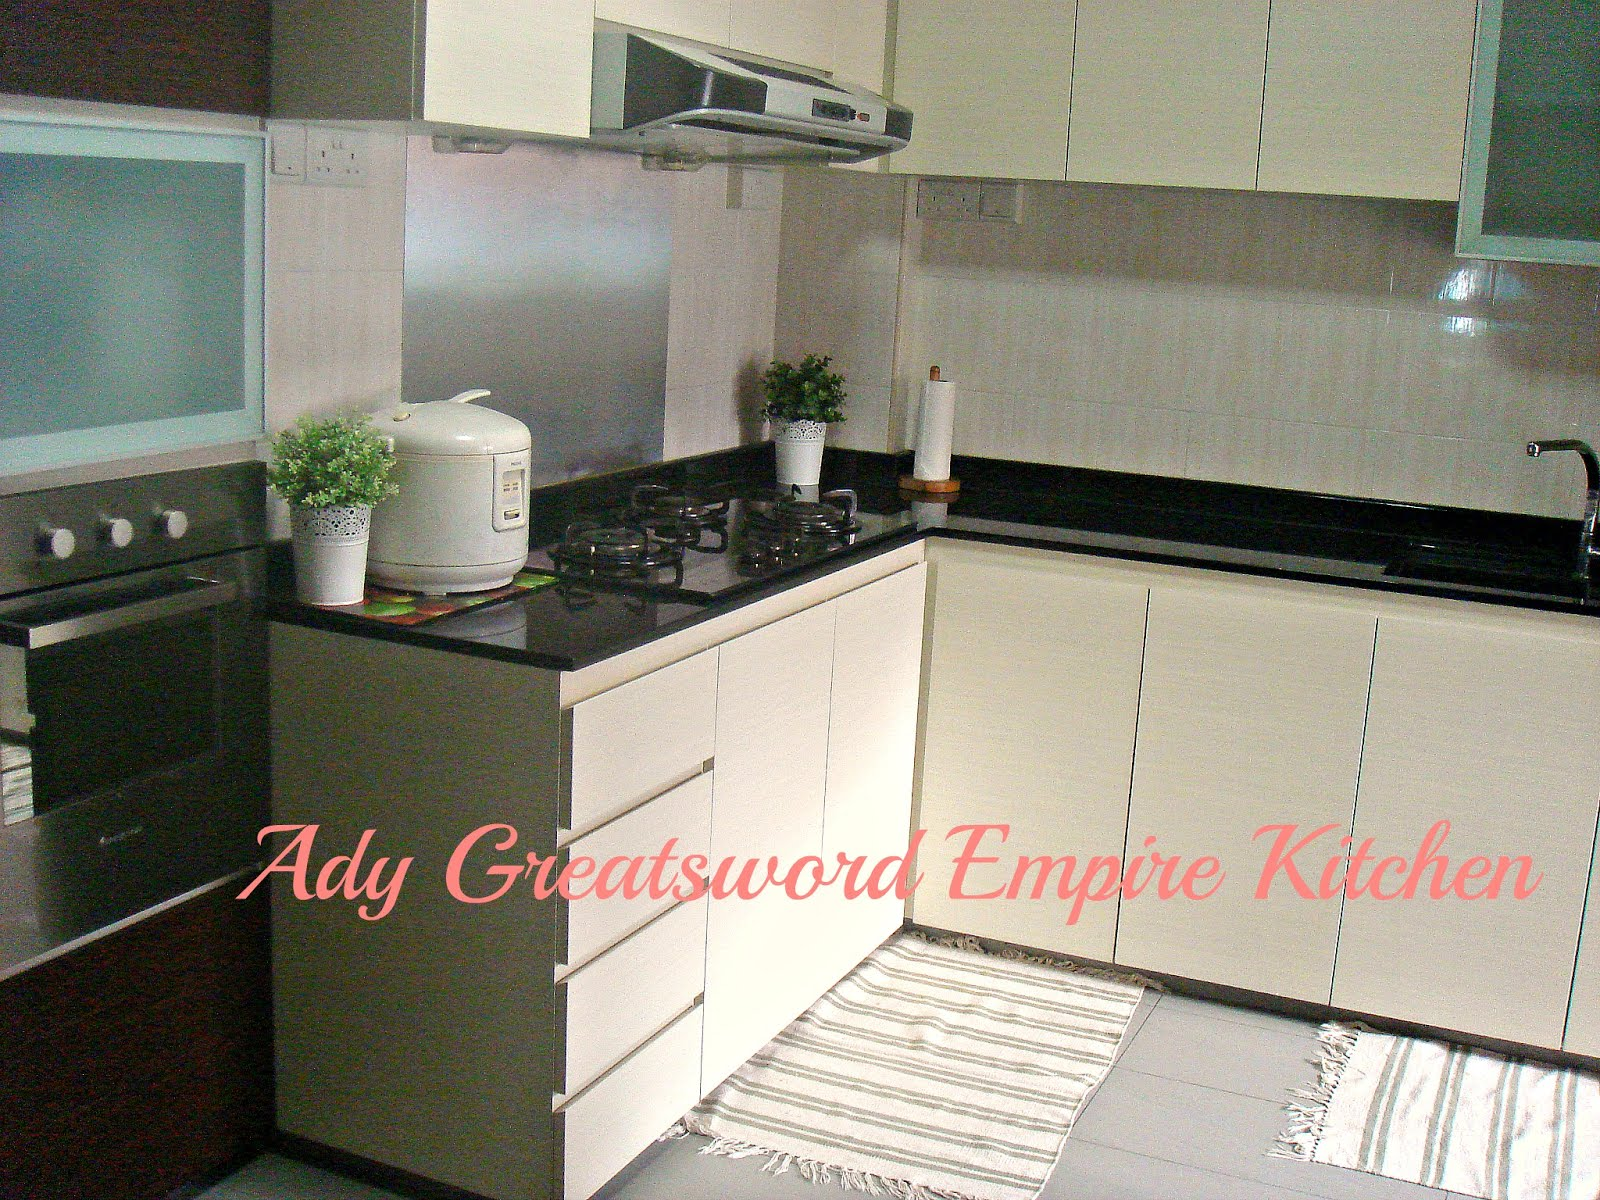 Ady Greatsword Empire Kitchen  Recipes